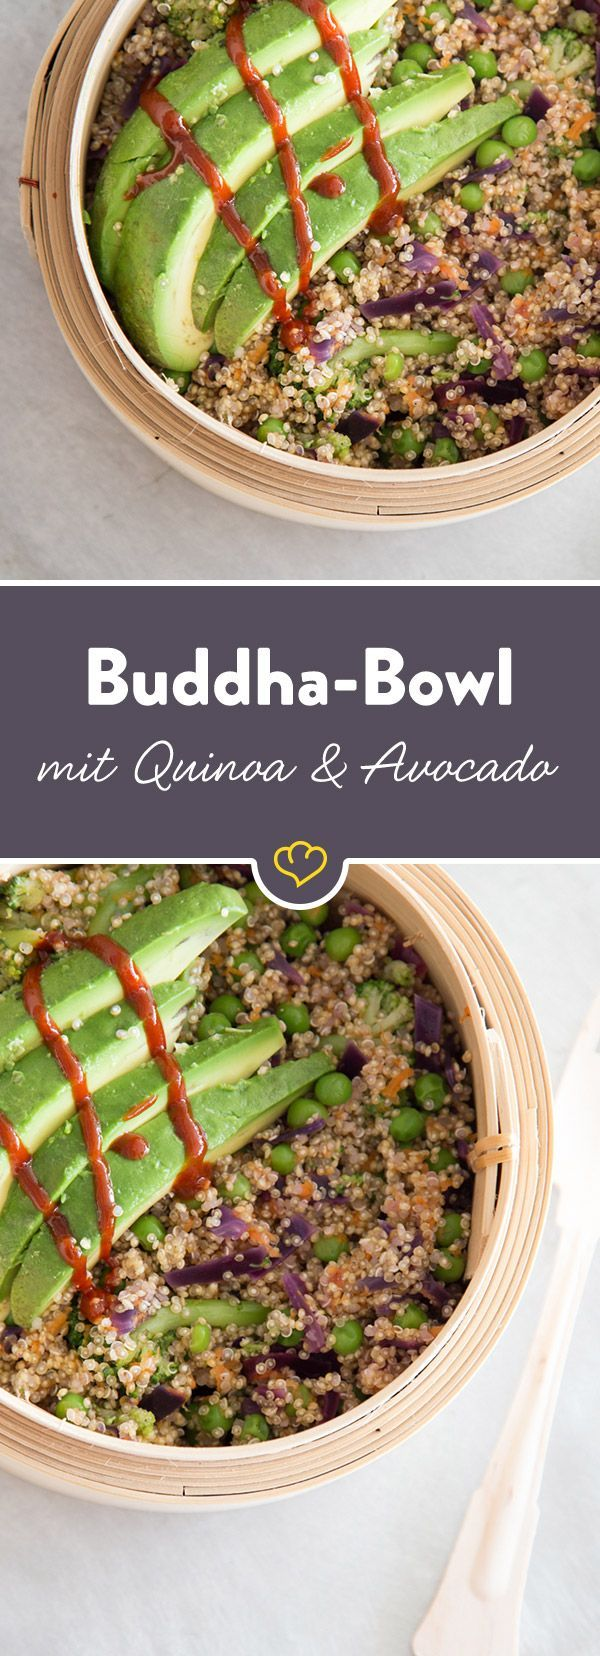 Superfood Buddha bowl with quinoa and avocado -